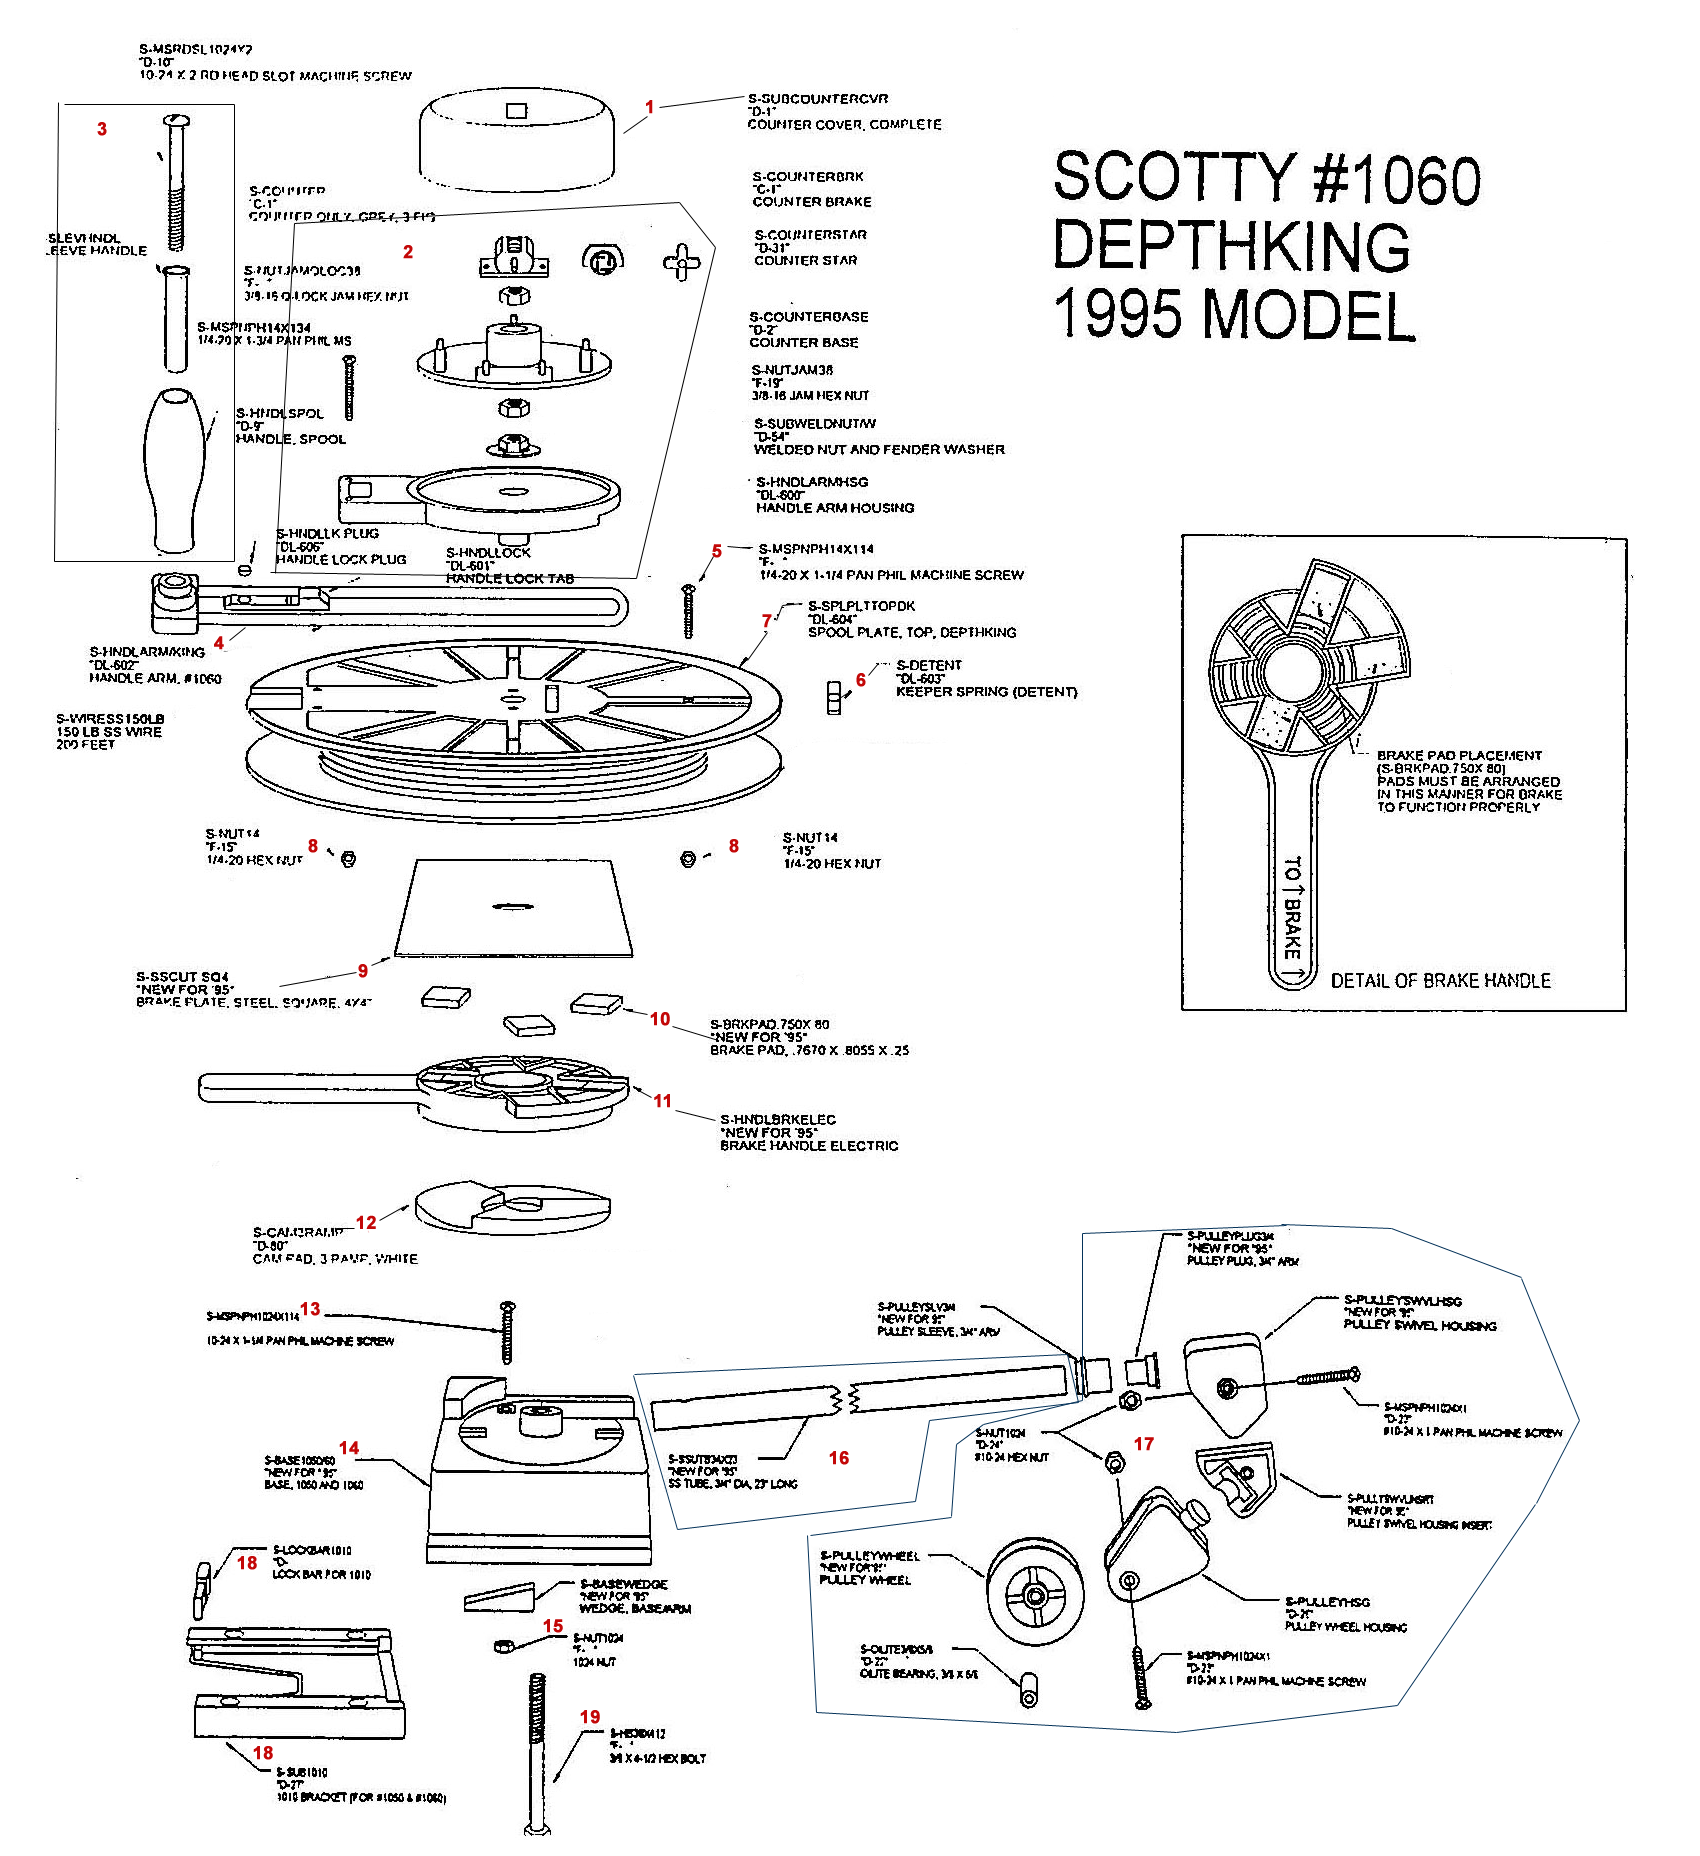 Order Scotty 1060 Manual Downrigger Parts From Fish307 Com